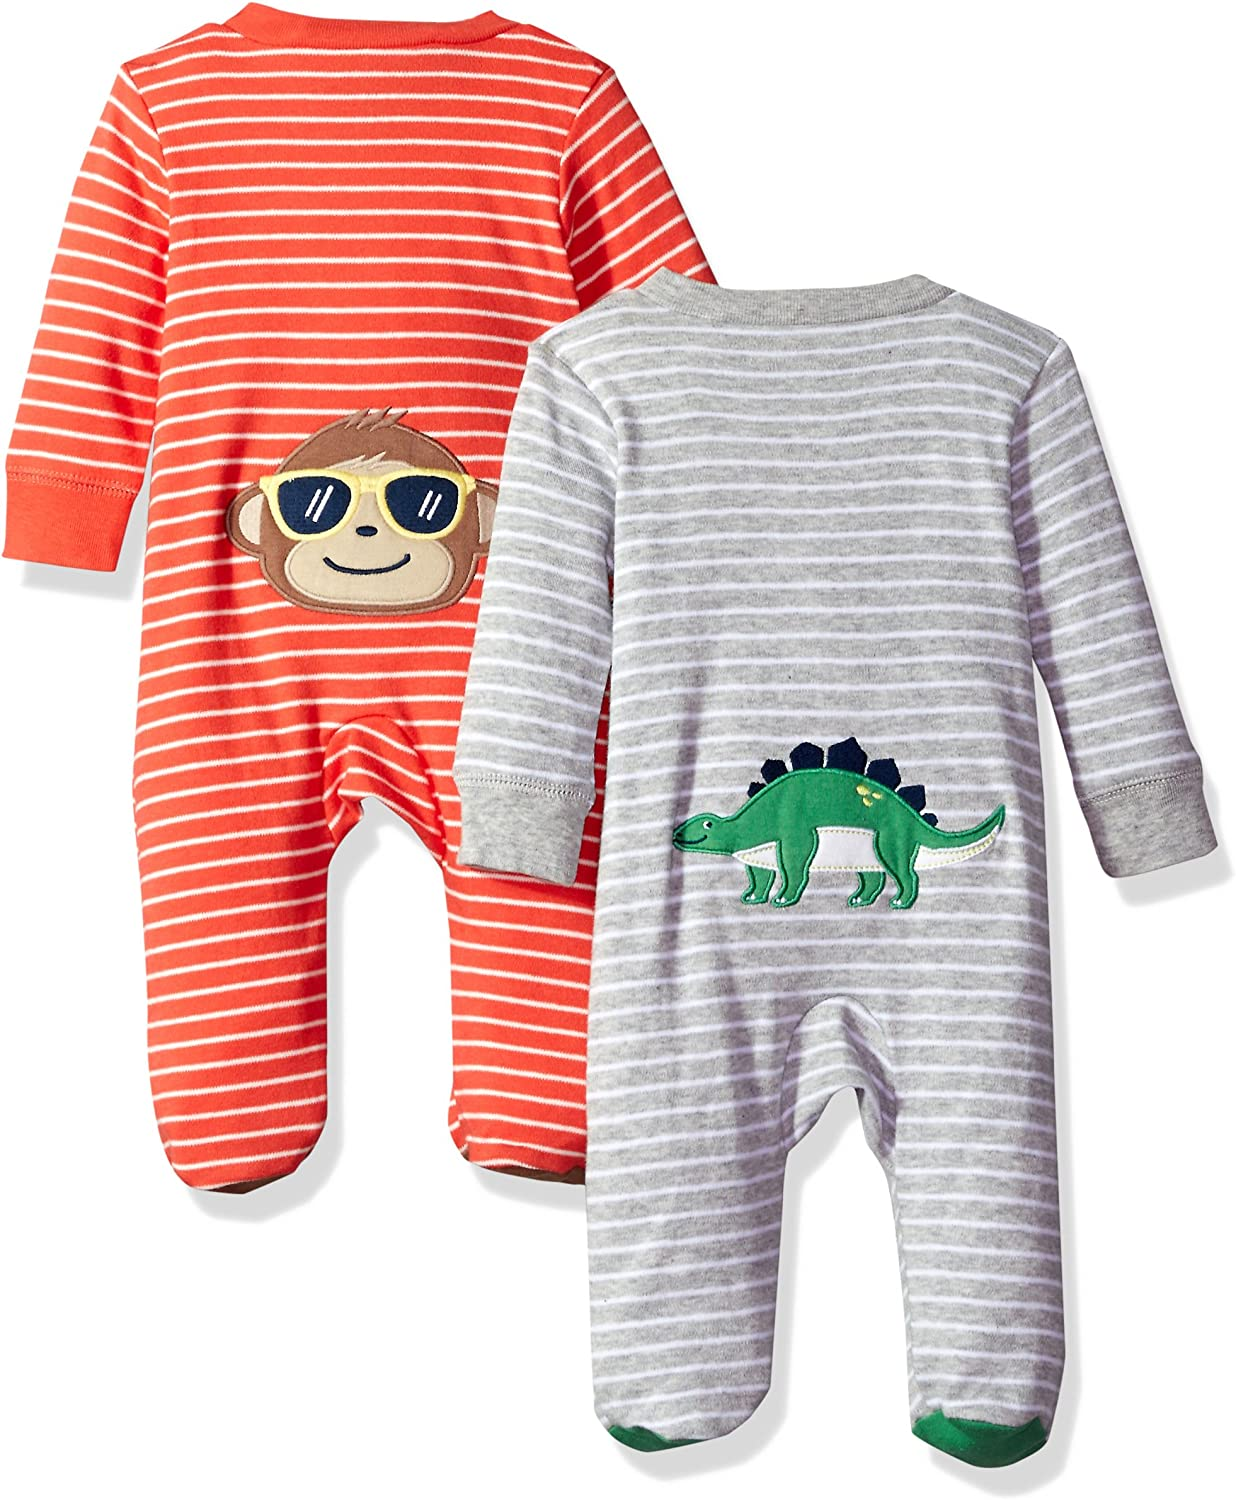 Carters Baby-Boys 2-Pack Cotton Sleep and Play Romper